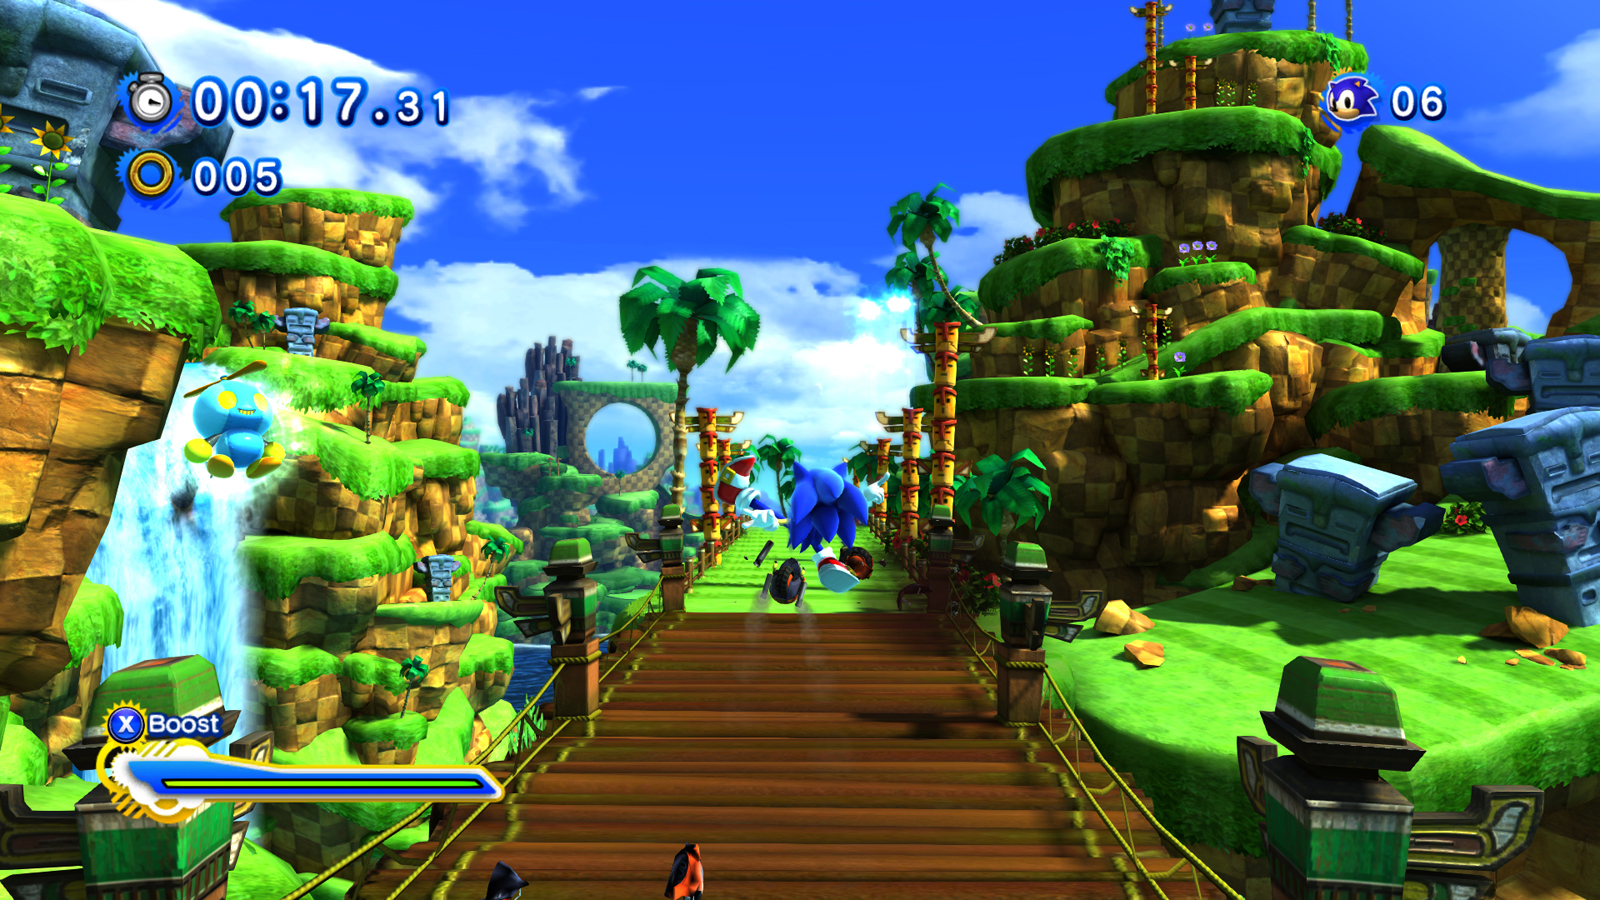 49+] Sonic Generations Wallpaper HD on WallpaperSafari